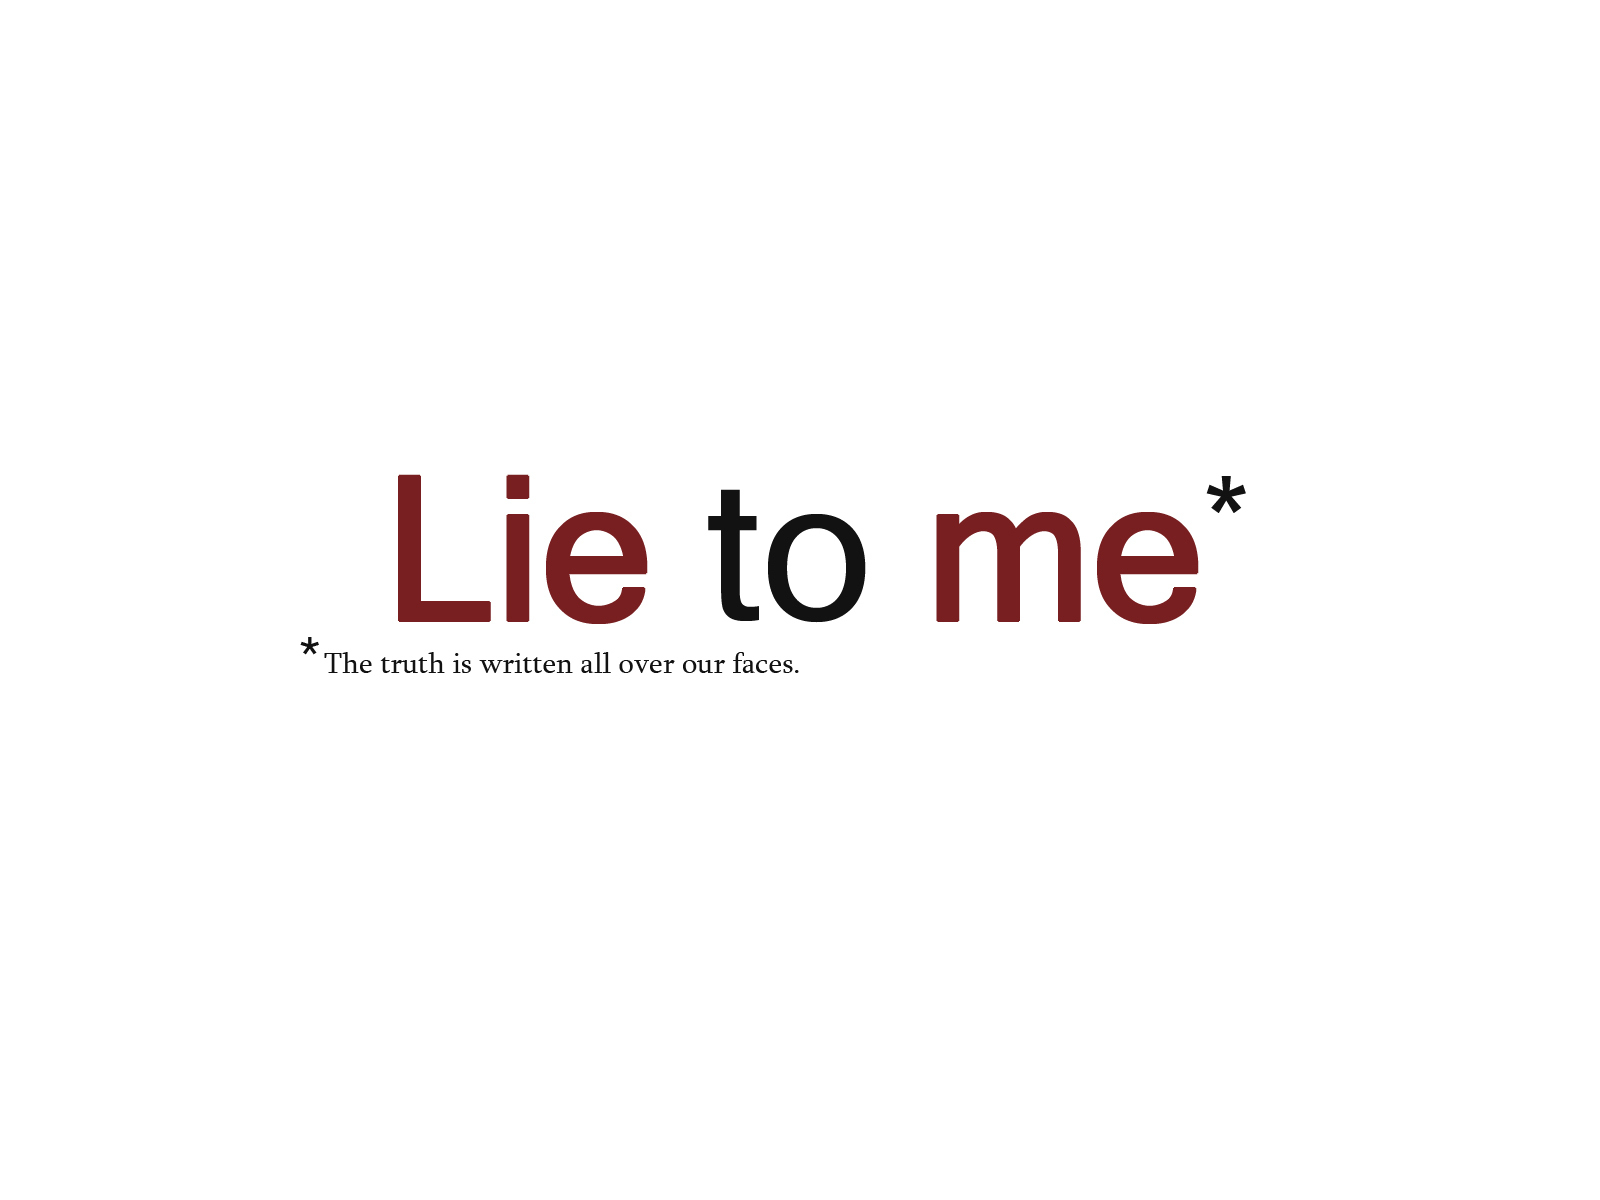 lie to me essay Parents lie to their kids about these folklores mostly just to create fun, memorable holidays the other reason is so their kids behave the myth of santa claus tells kids that they have to be on their best behavior all year to receive presents if they're bad they get coal on christmas morning the presents at christmas, the candy at easter, and.